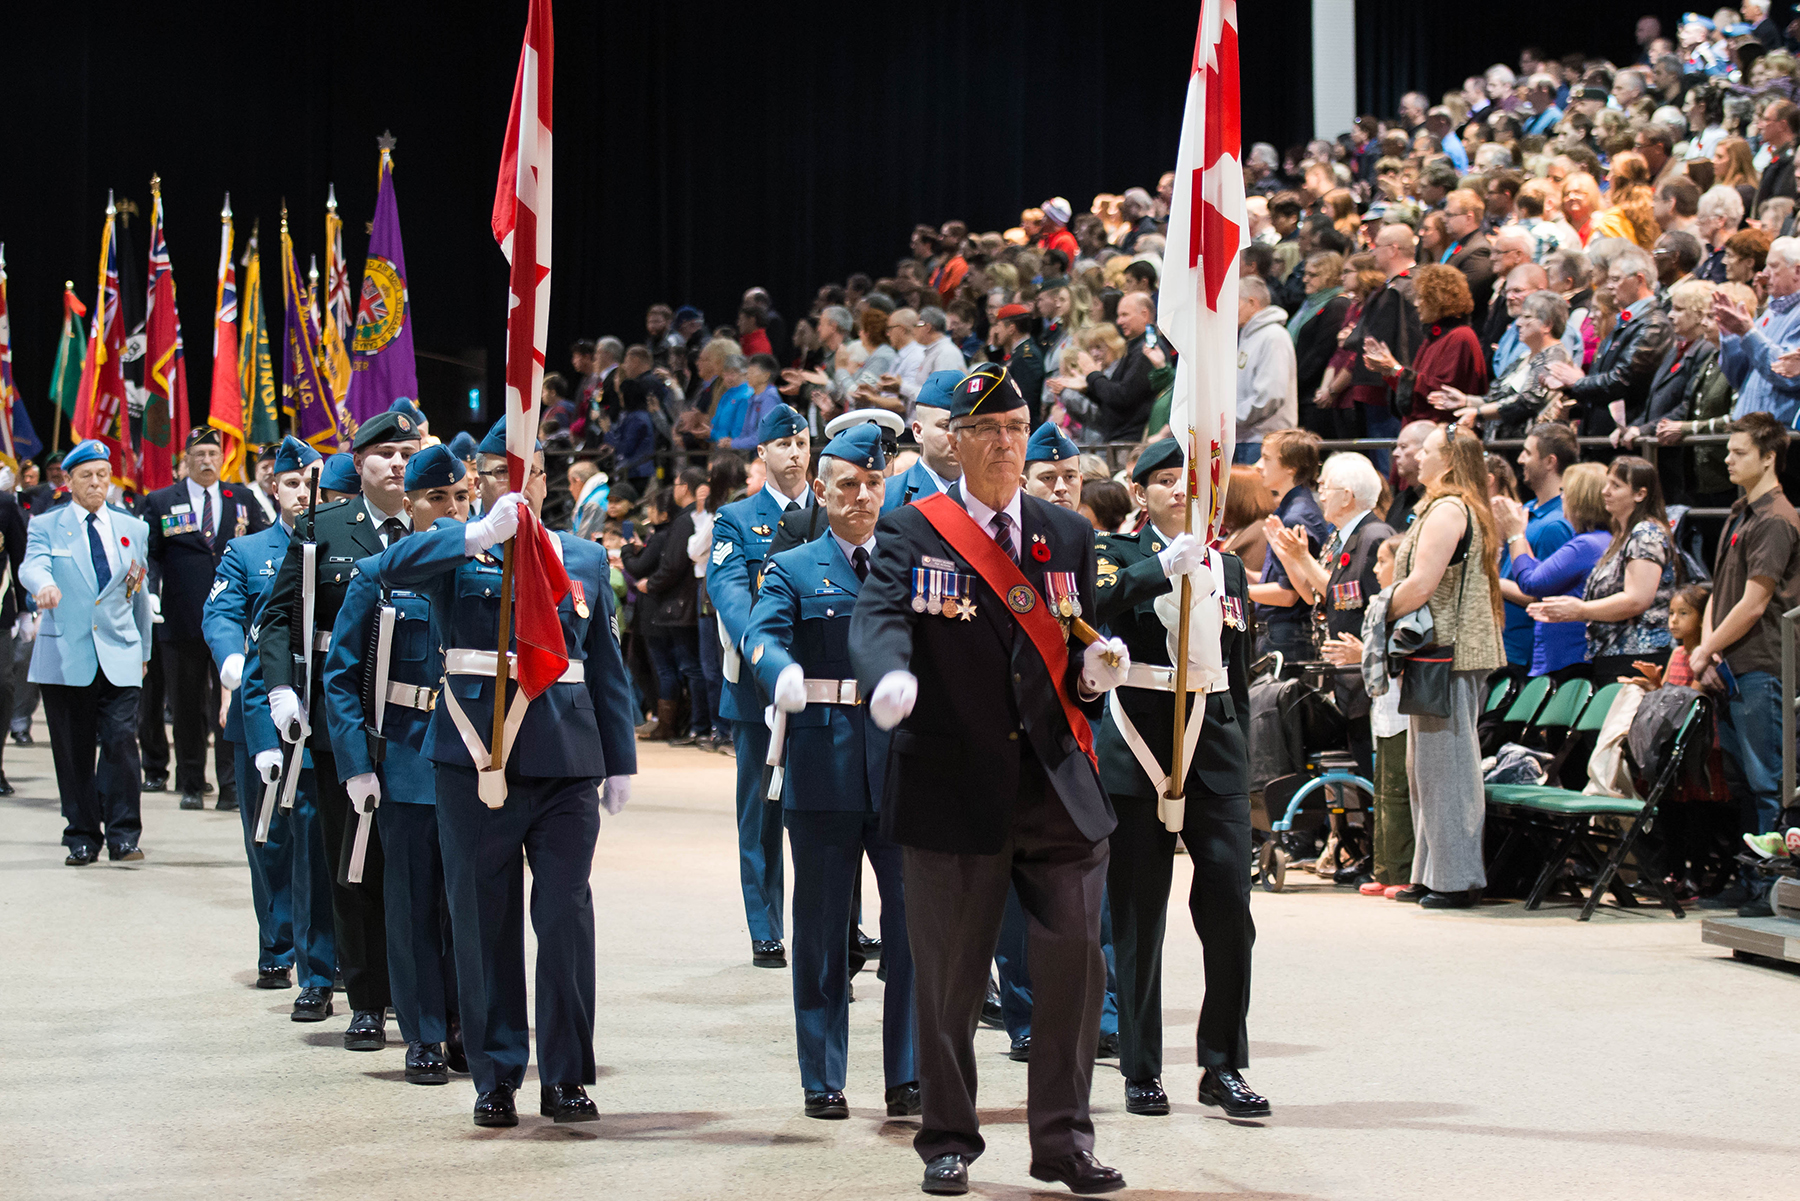 The 17 Wing Winnipeg colour party marches on during the Joint Veterans' Association Remembrance Day Service held on November 11, 2016, at the RBC Convention Centre in Winnipeg, Manitoba. The service commemorated the 100th anniversary of the Battle of the Somme. PHOTO: Sergeant Daren Kraus